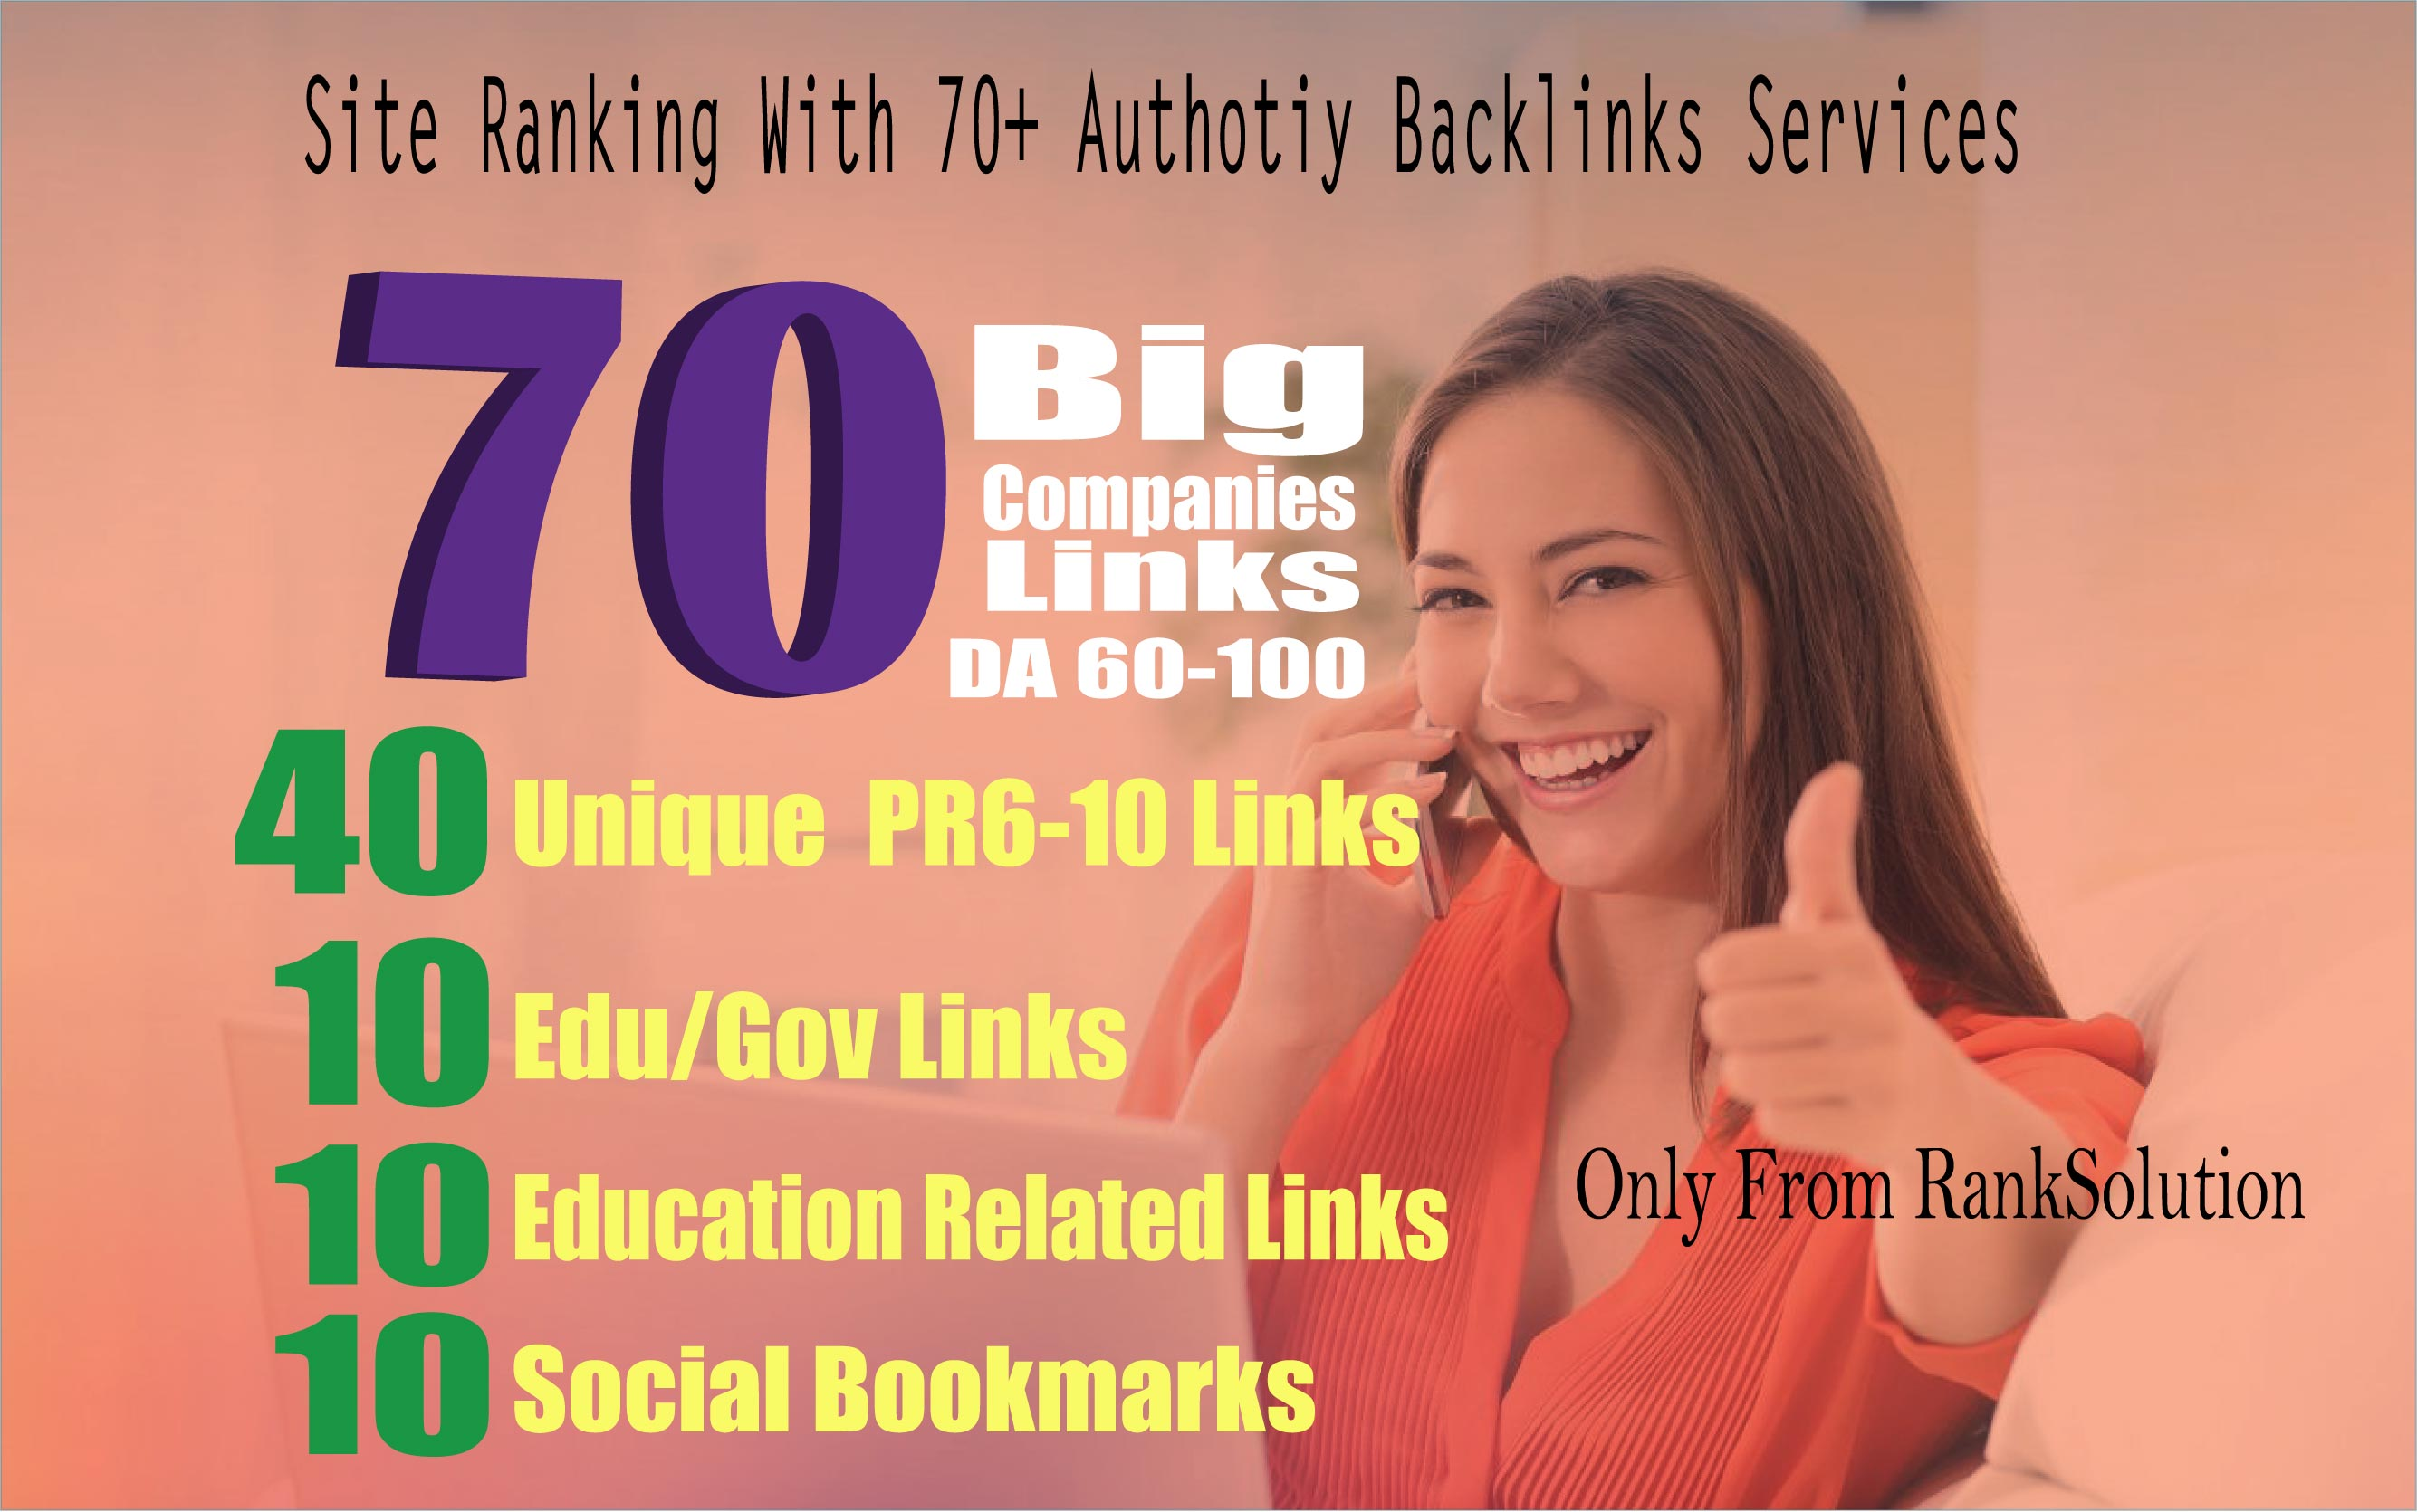 Create 70 Big Companies Links_ Link From 40 Unique Domain, 20 Gov/Edu, 10 SOCIAL Bookmark